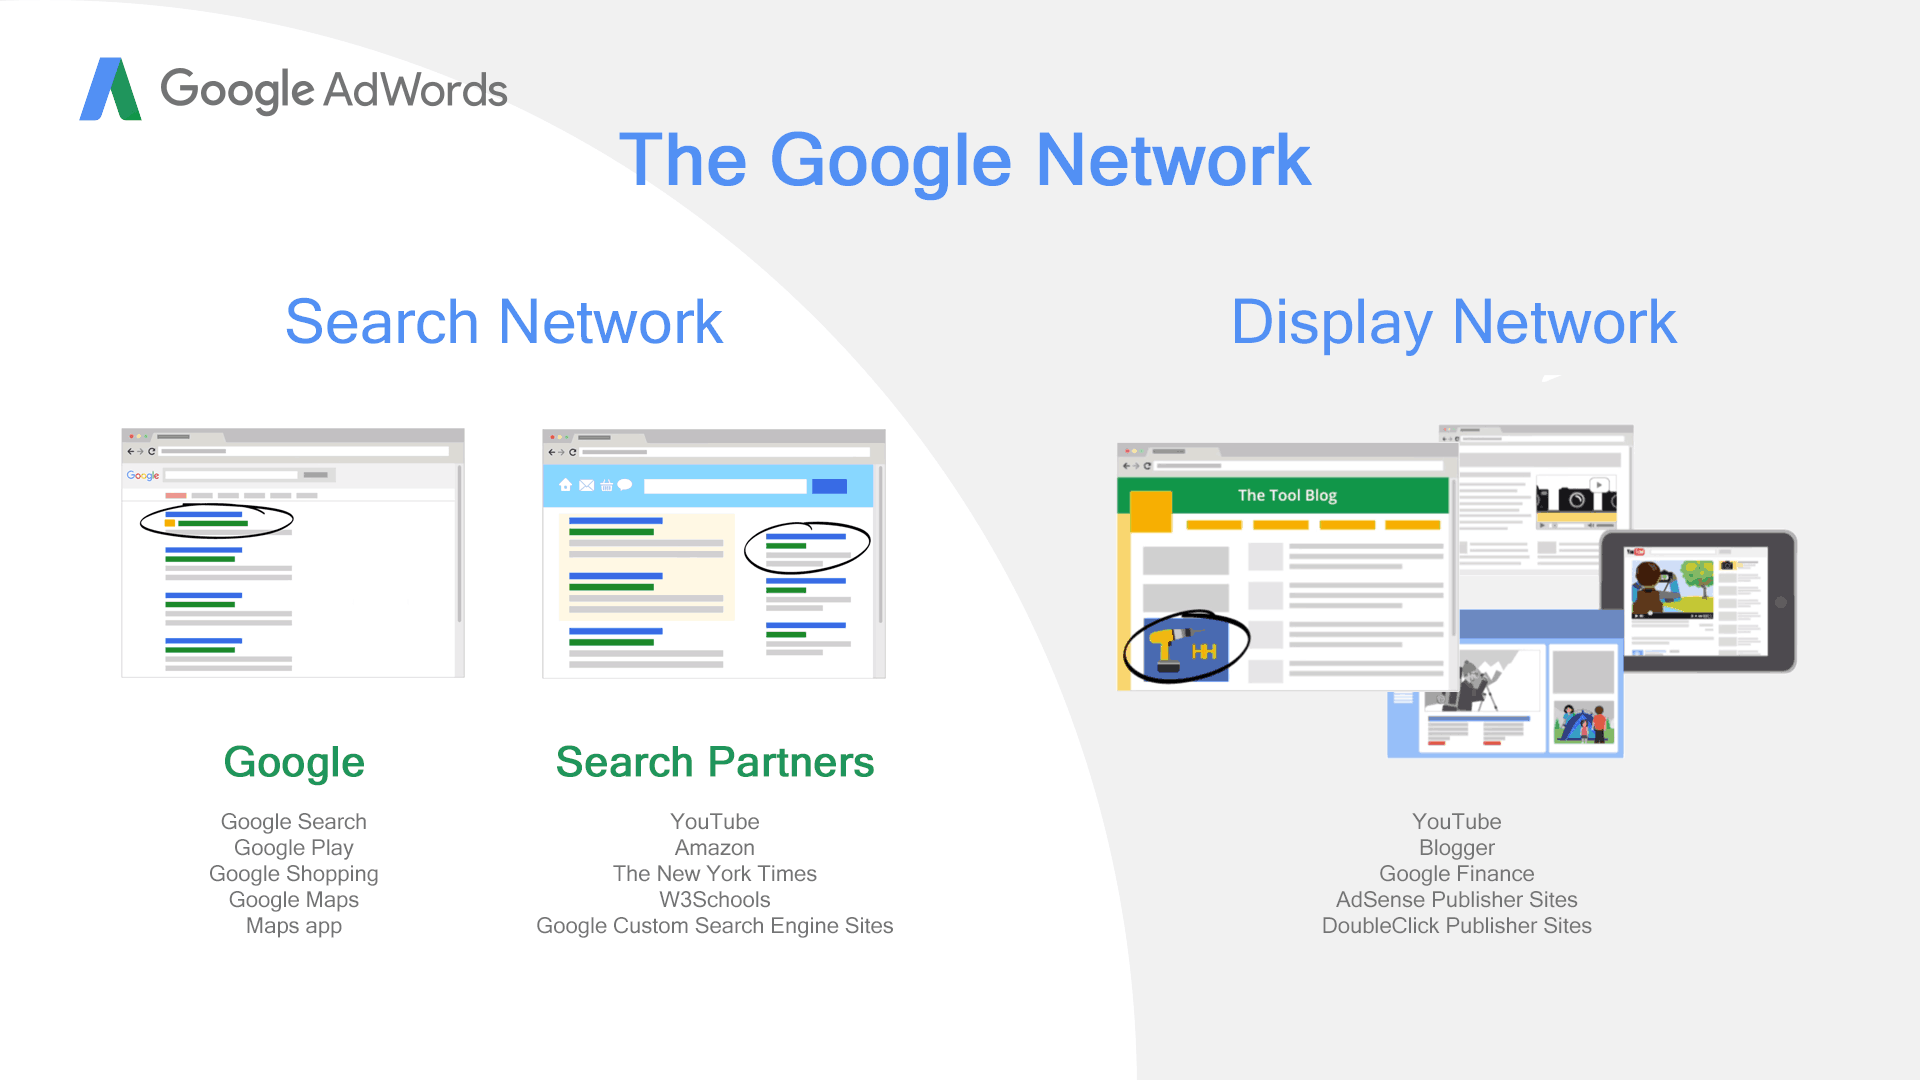 AdWords: Google Search Partners List 2019